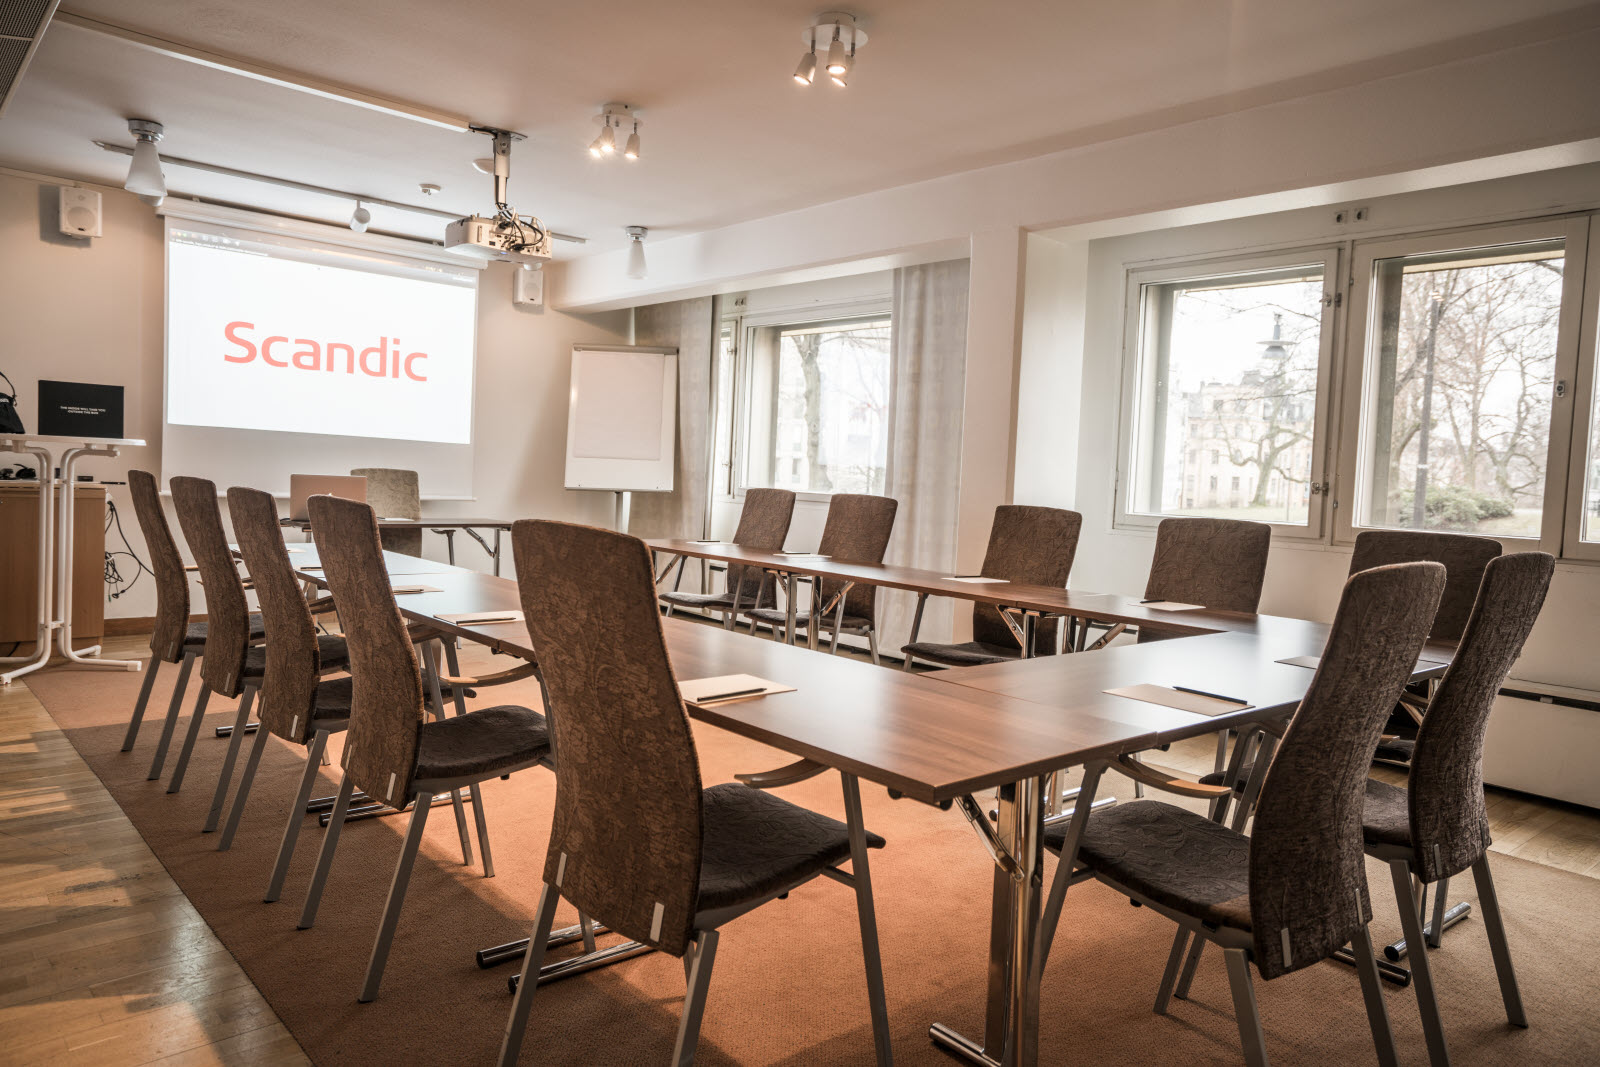 Meeting room - Eken